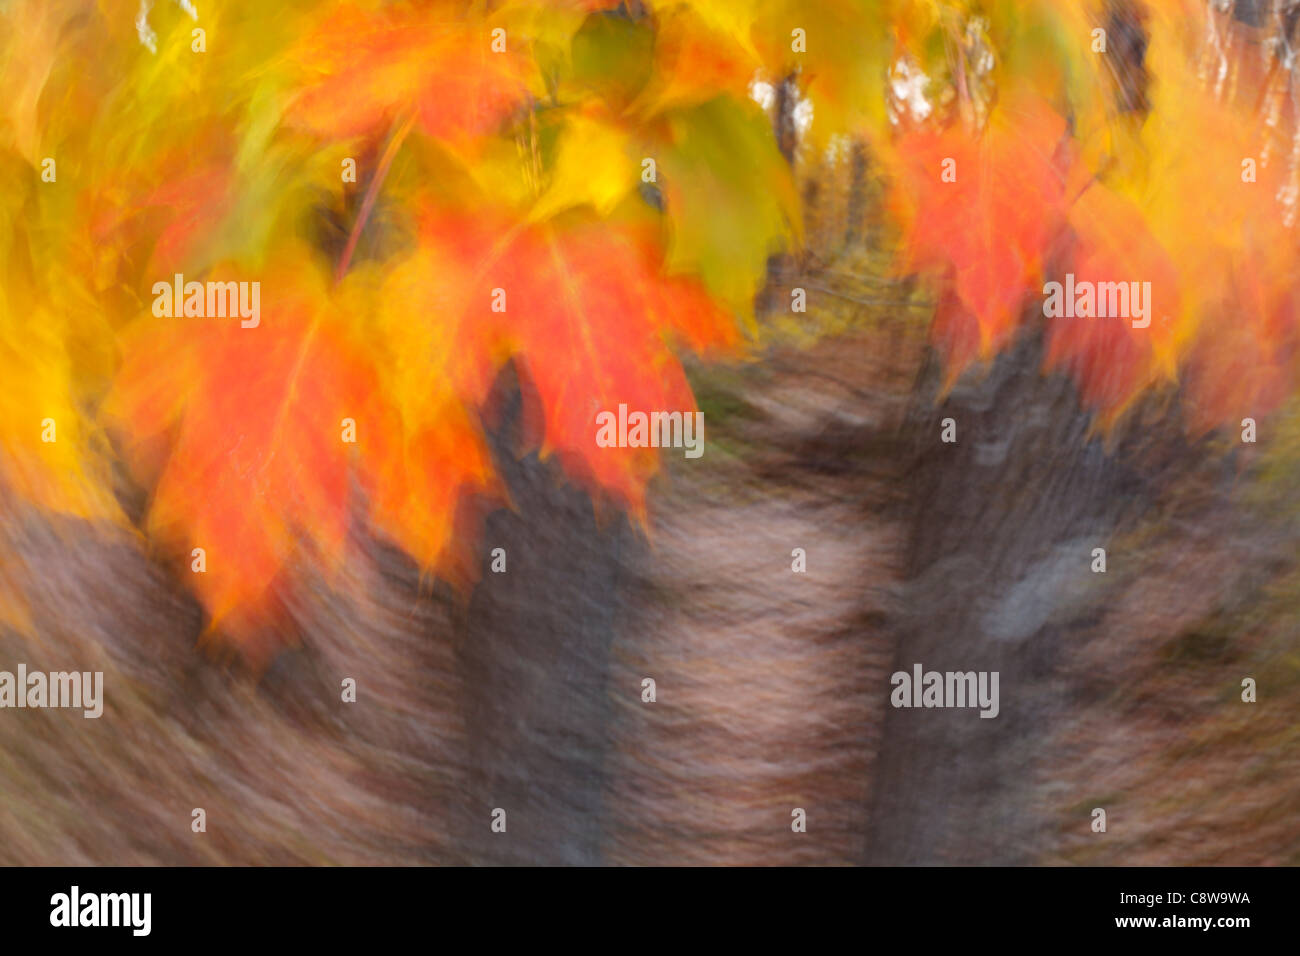 Abstract, motion blur view of maple tree leaves in a forest. - Stock Image